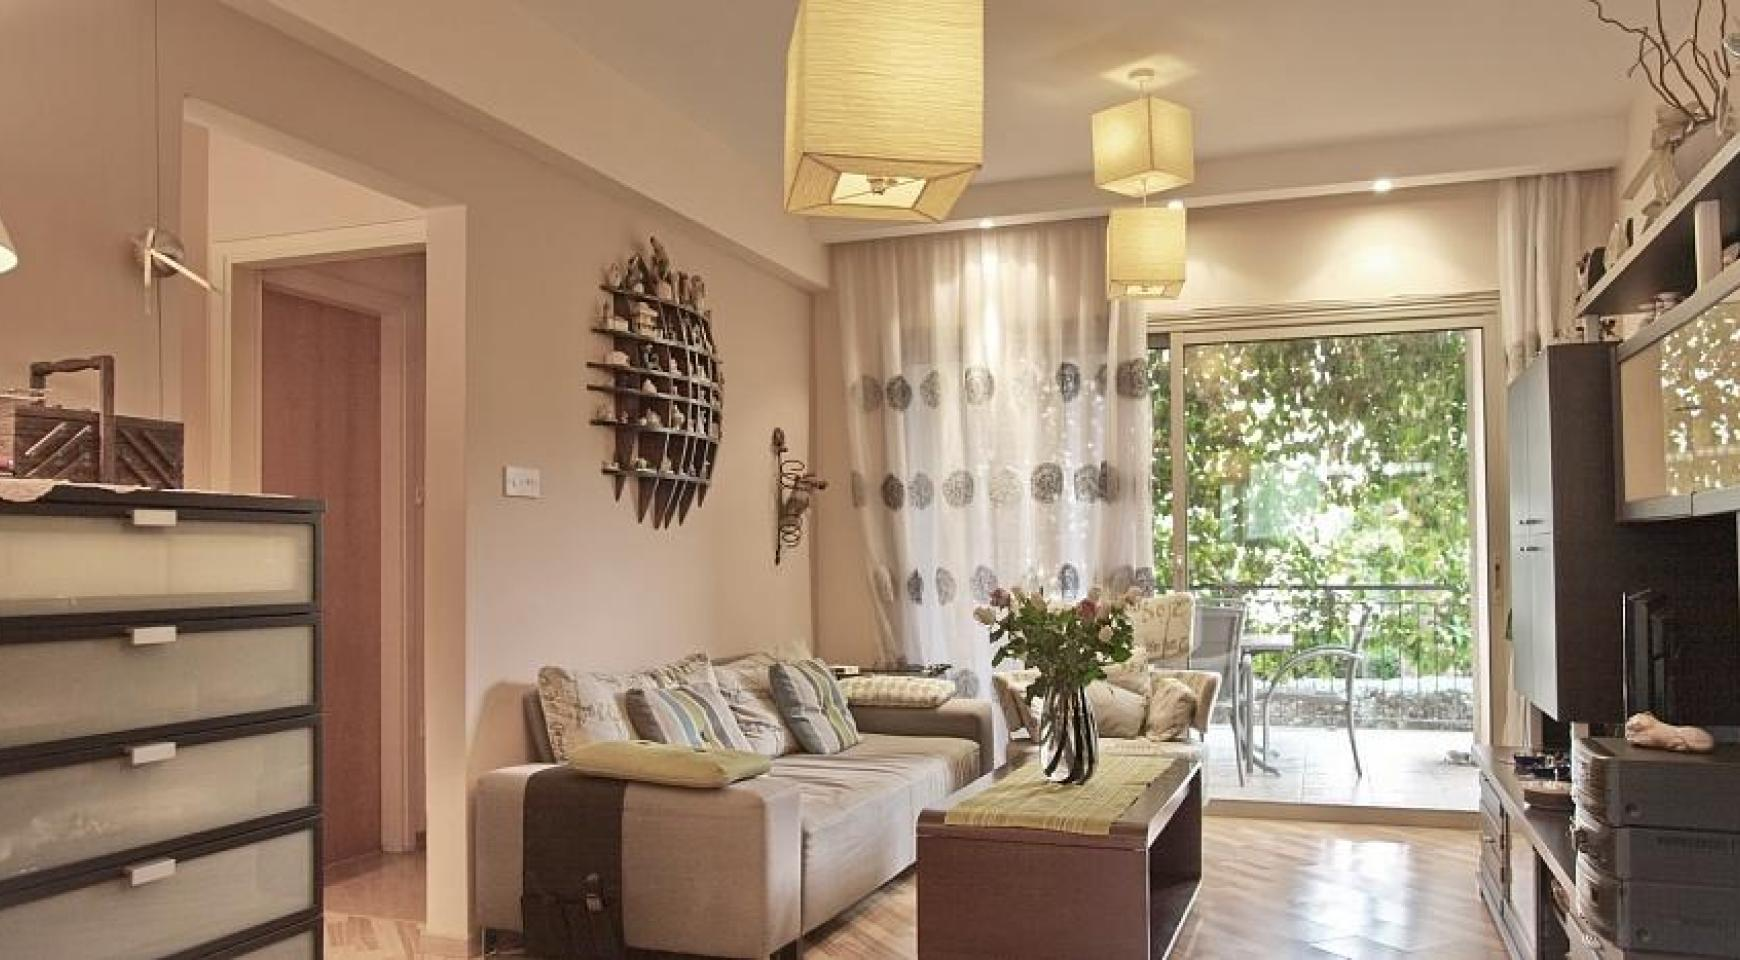 SPECIAL OFFER! 2 Bedroom Apartment with Private Garden - 1